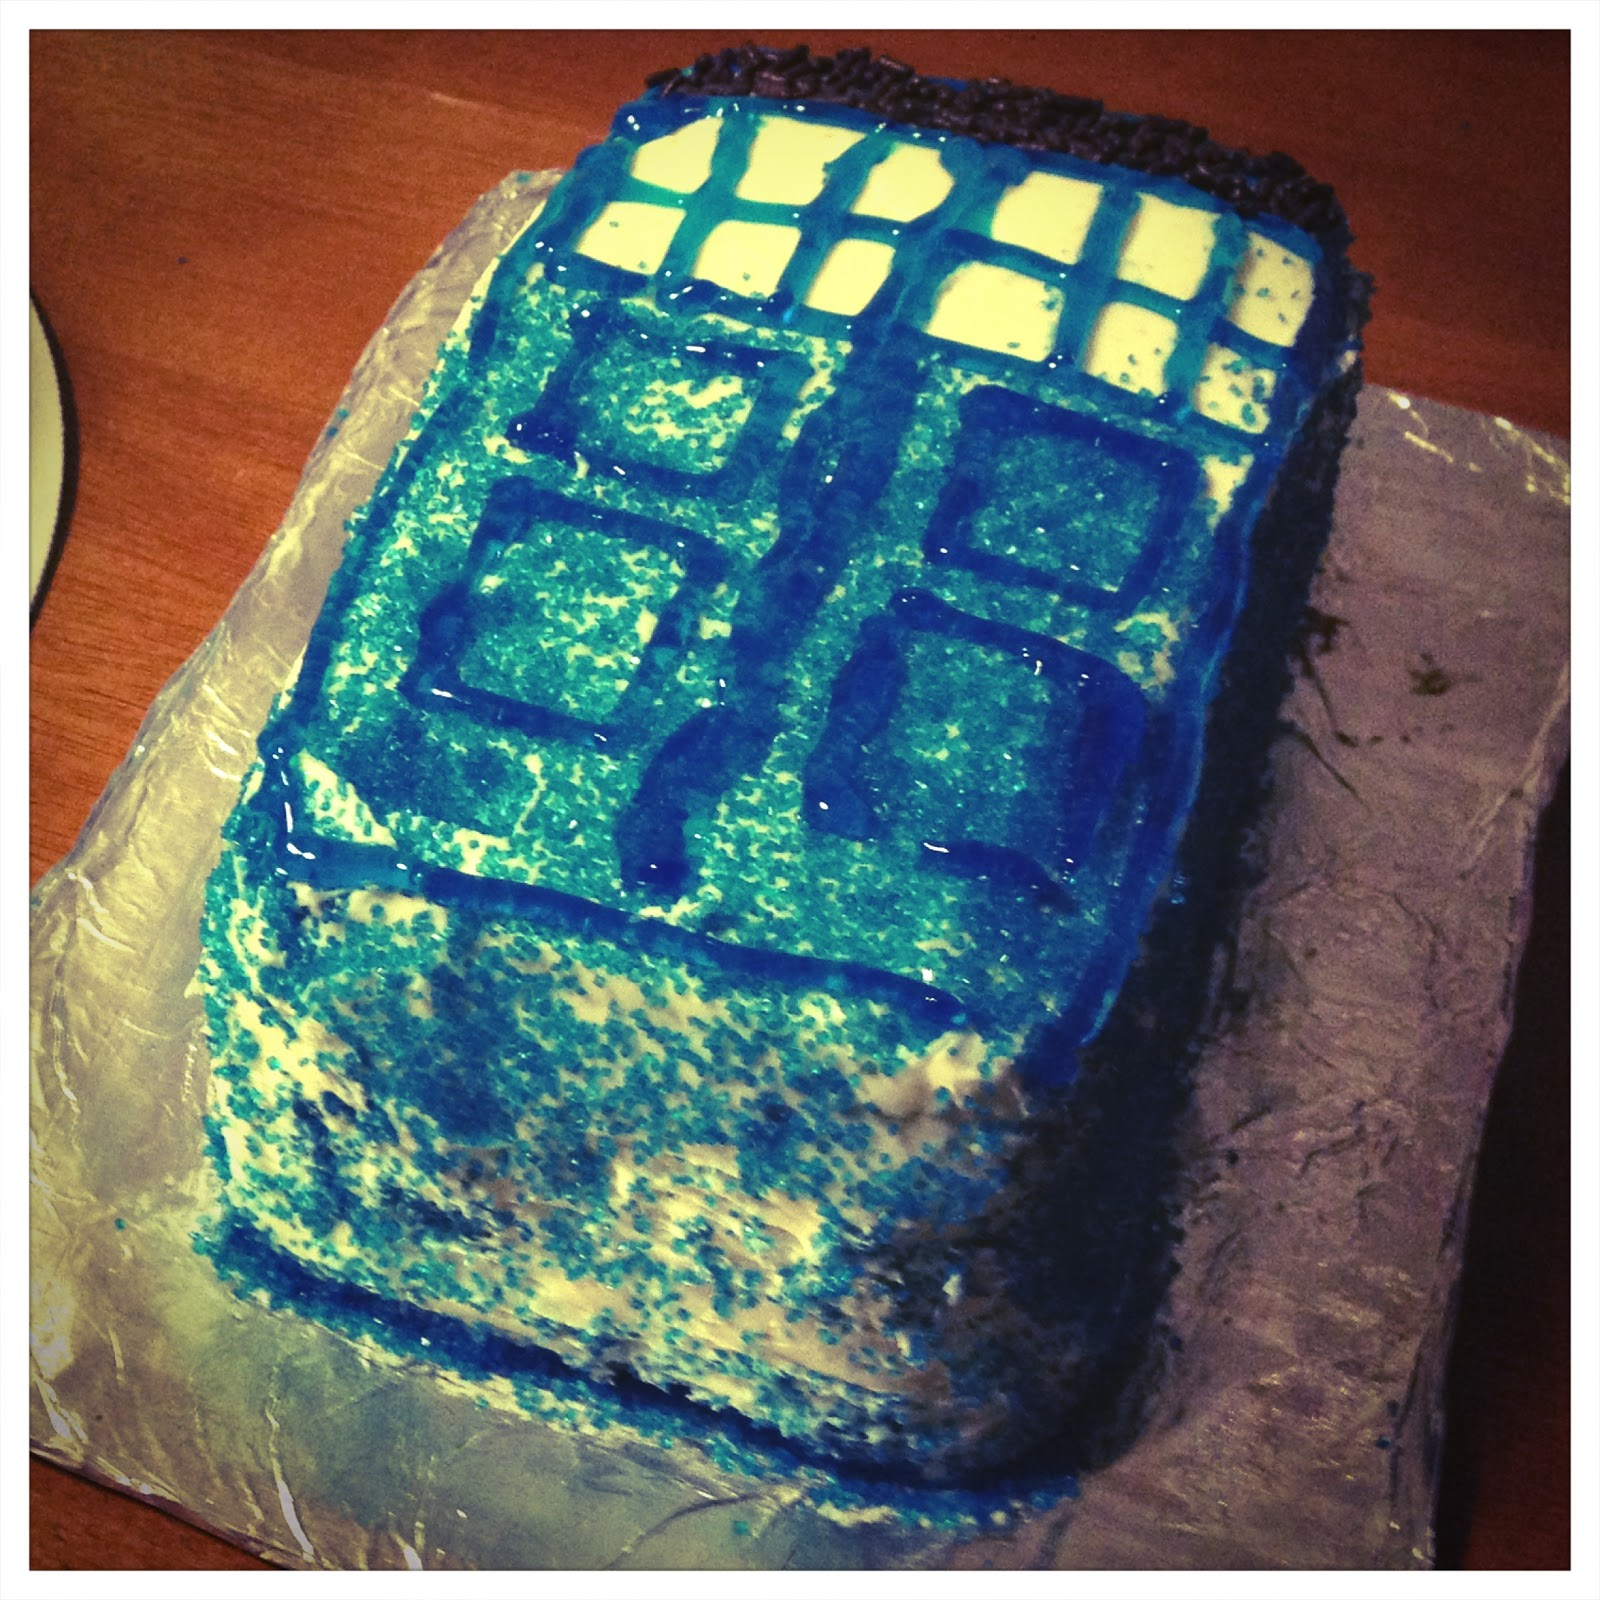 tardis template for cake - niki jin crafts a gallery of geeky cakes